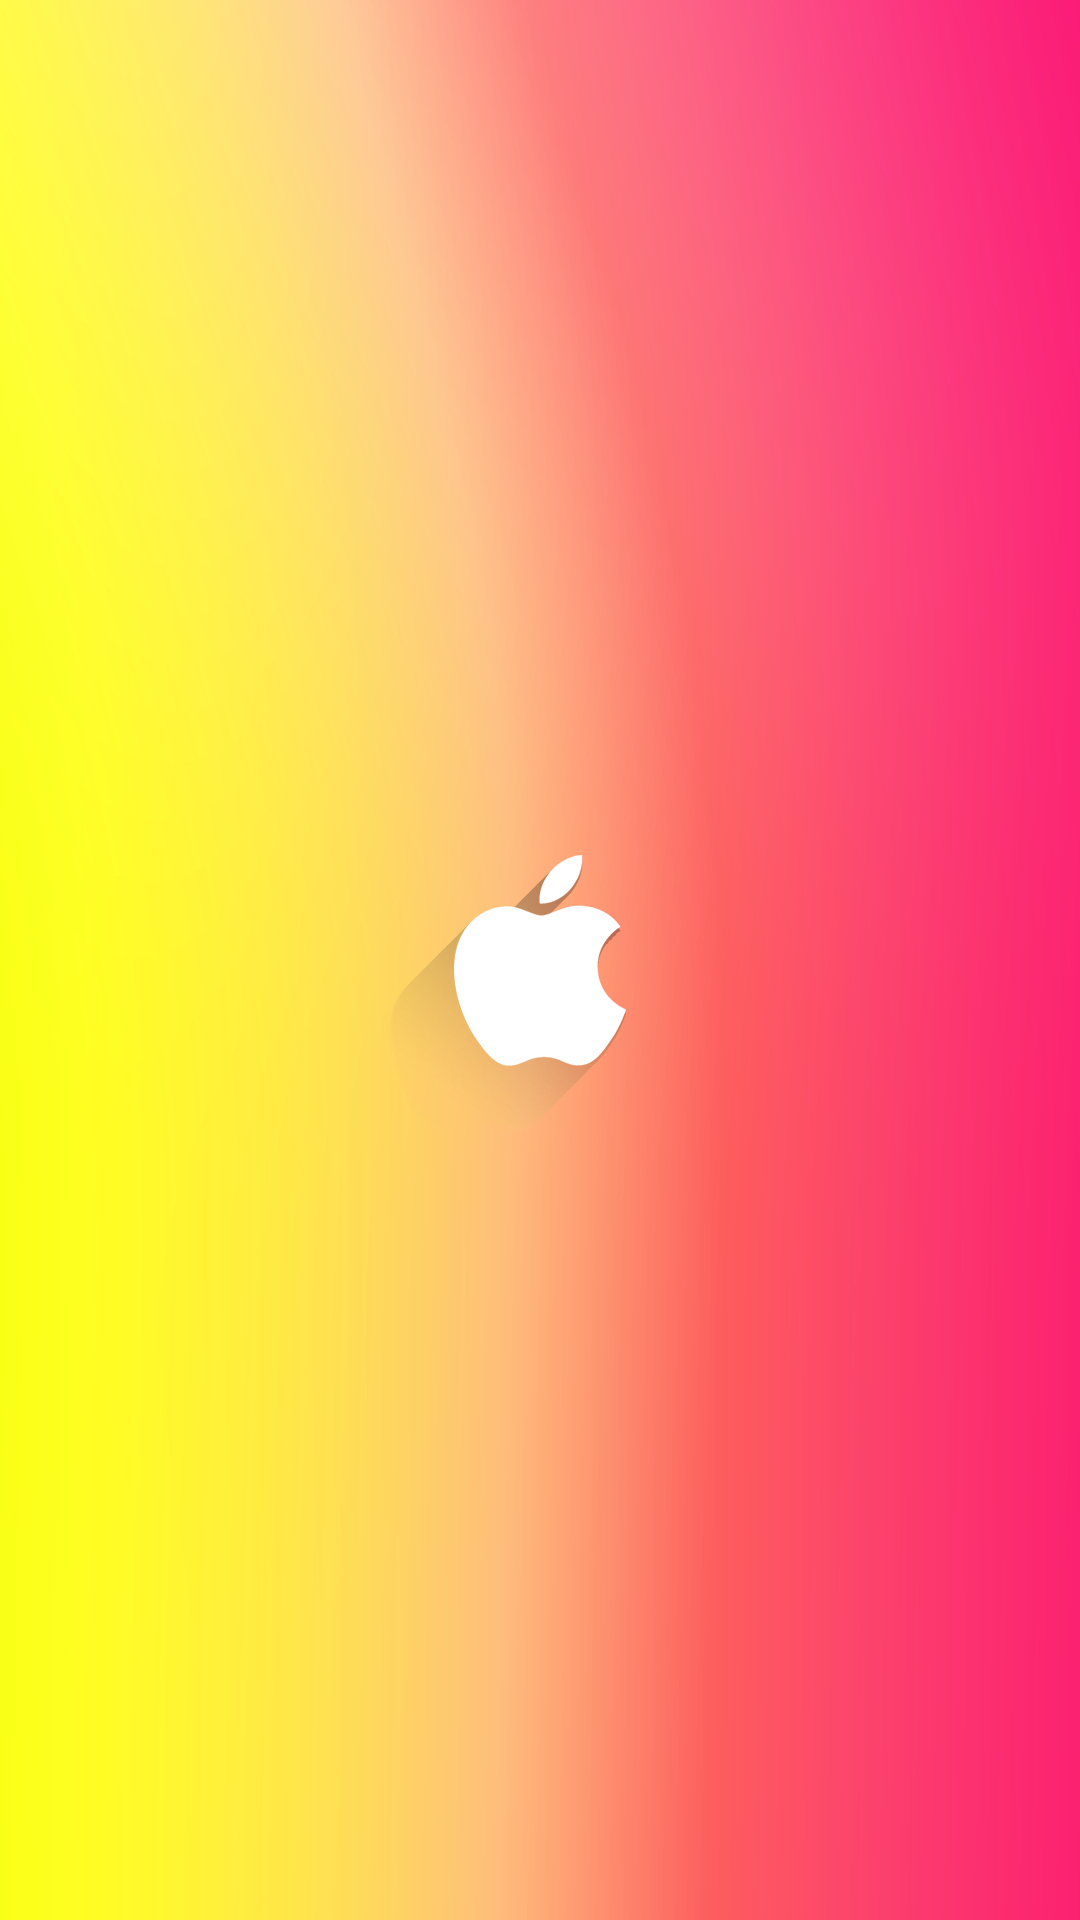 iPhone wallpaper apple logo yellow pink 3Wallpapers : notre sélection de fonds d'écran du 26/03/2018